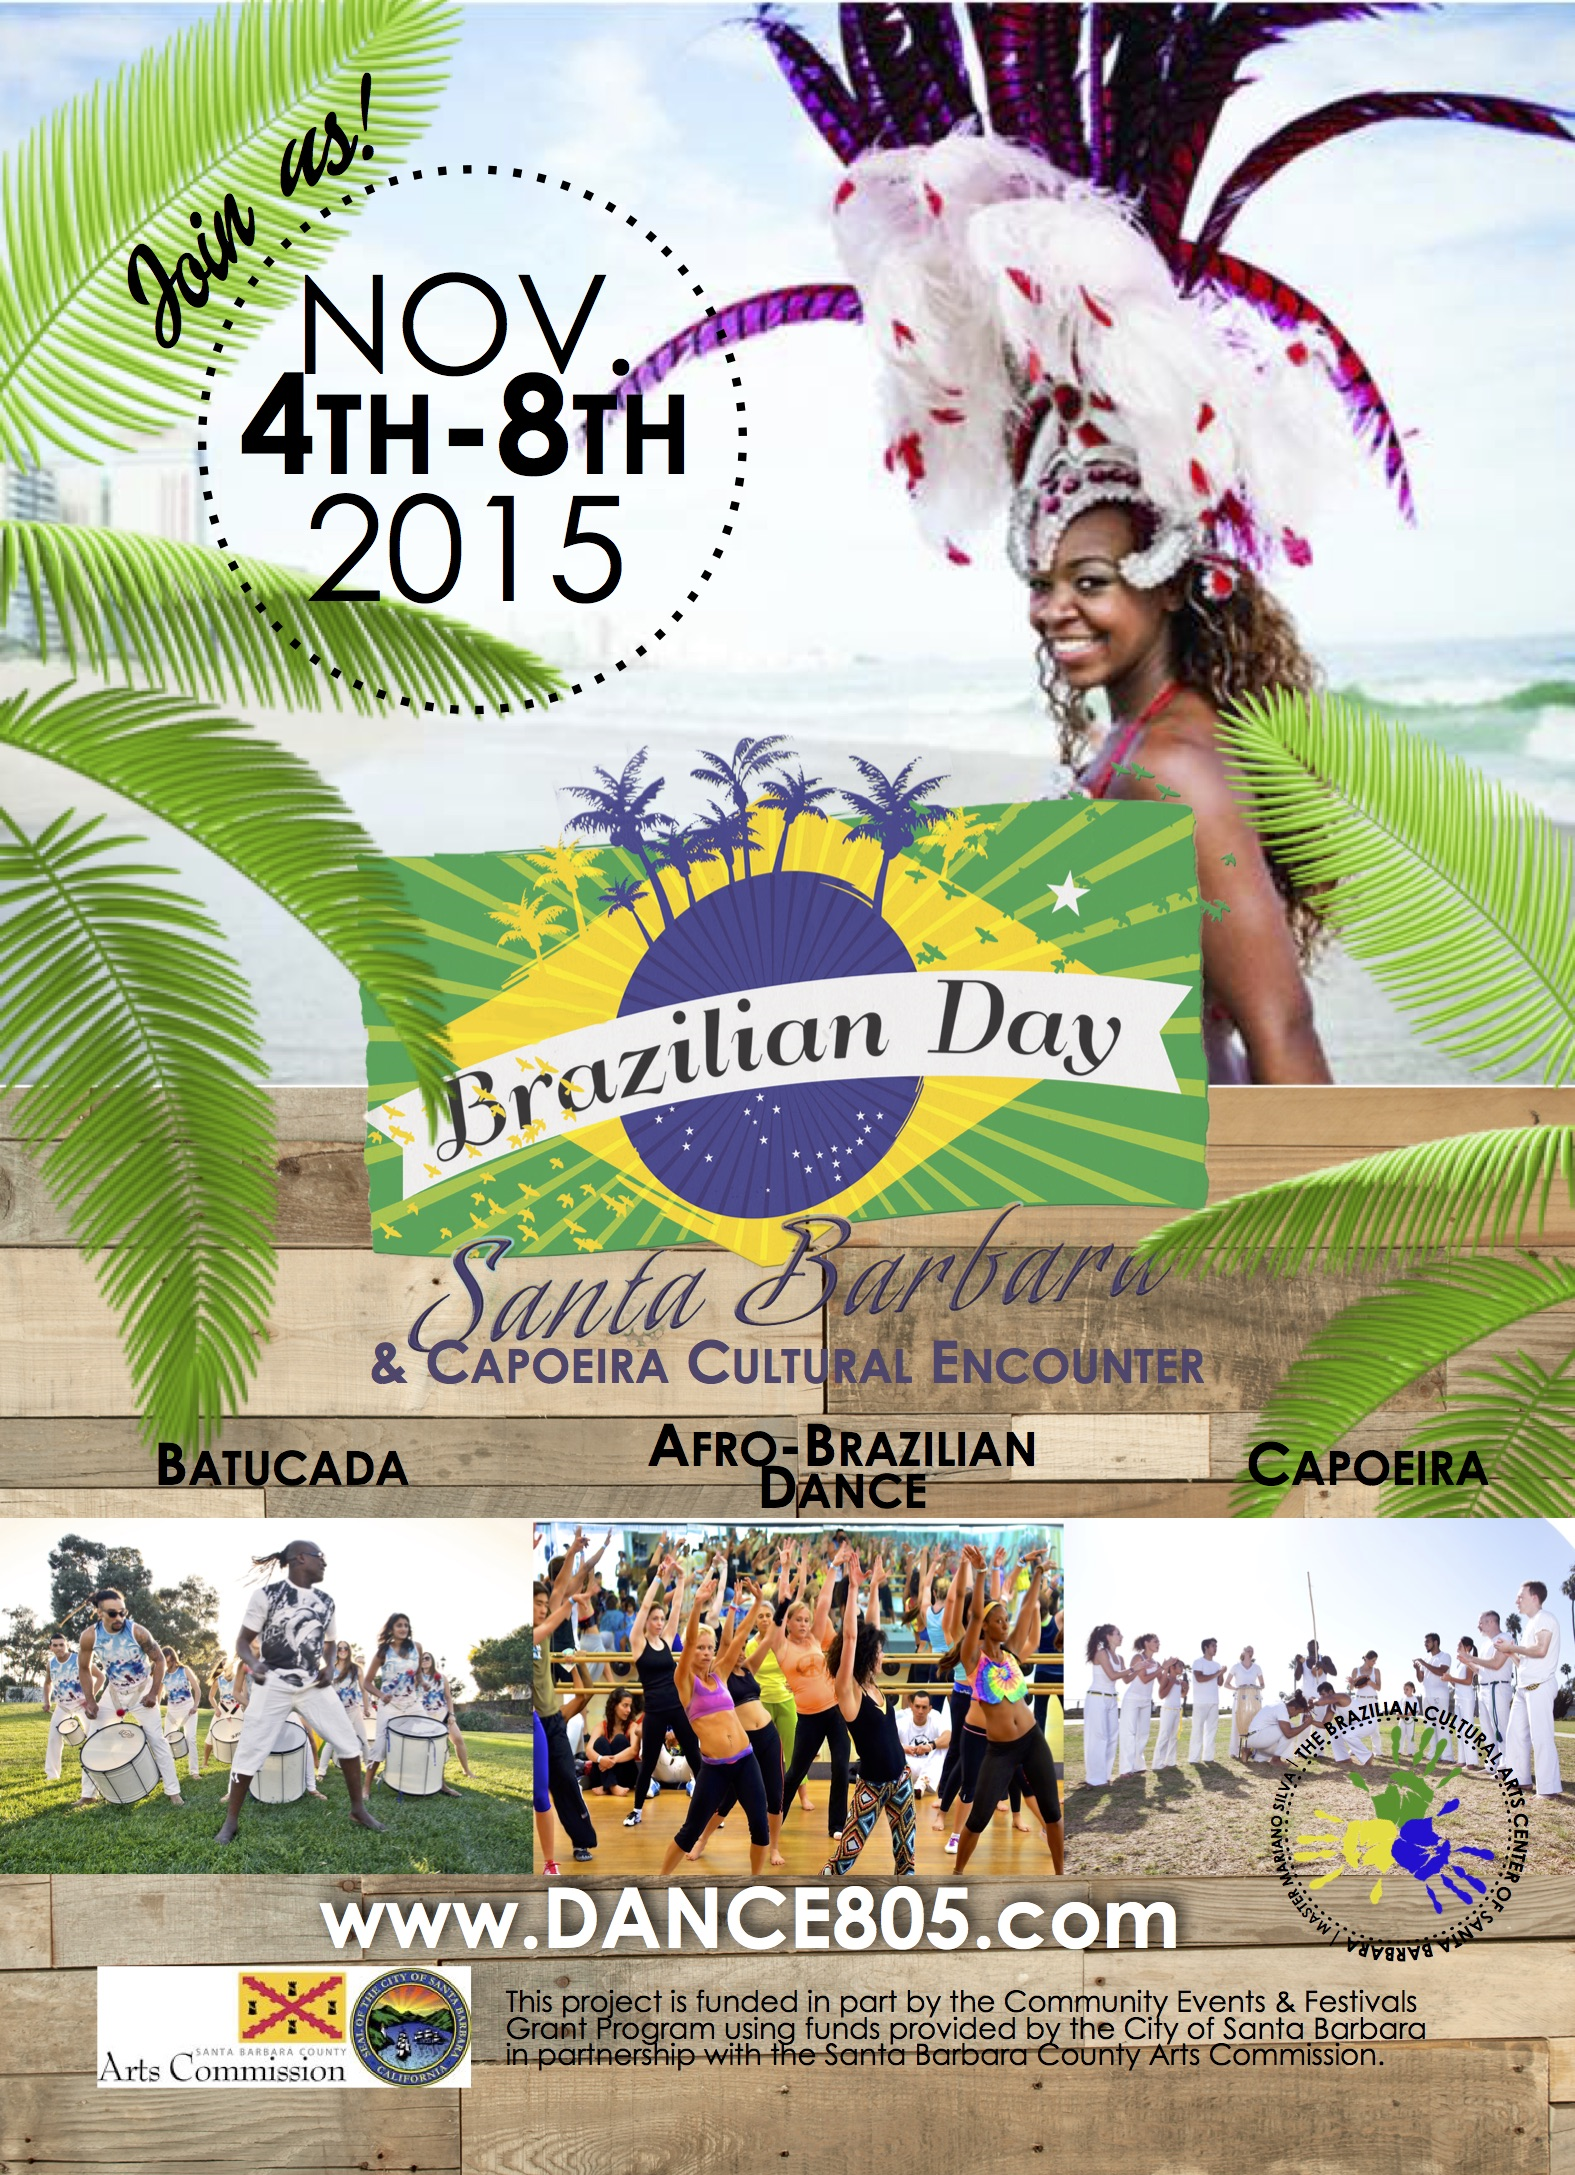 Brazilian Day Santa Barbara